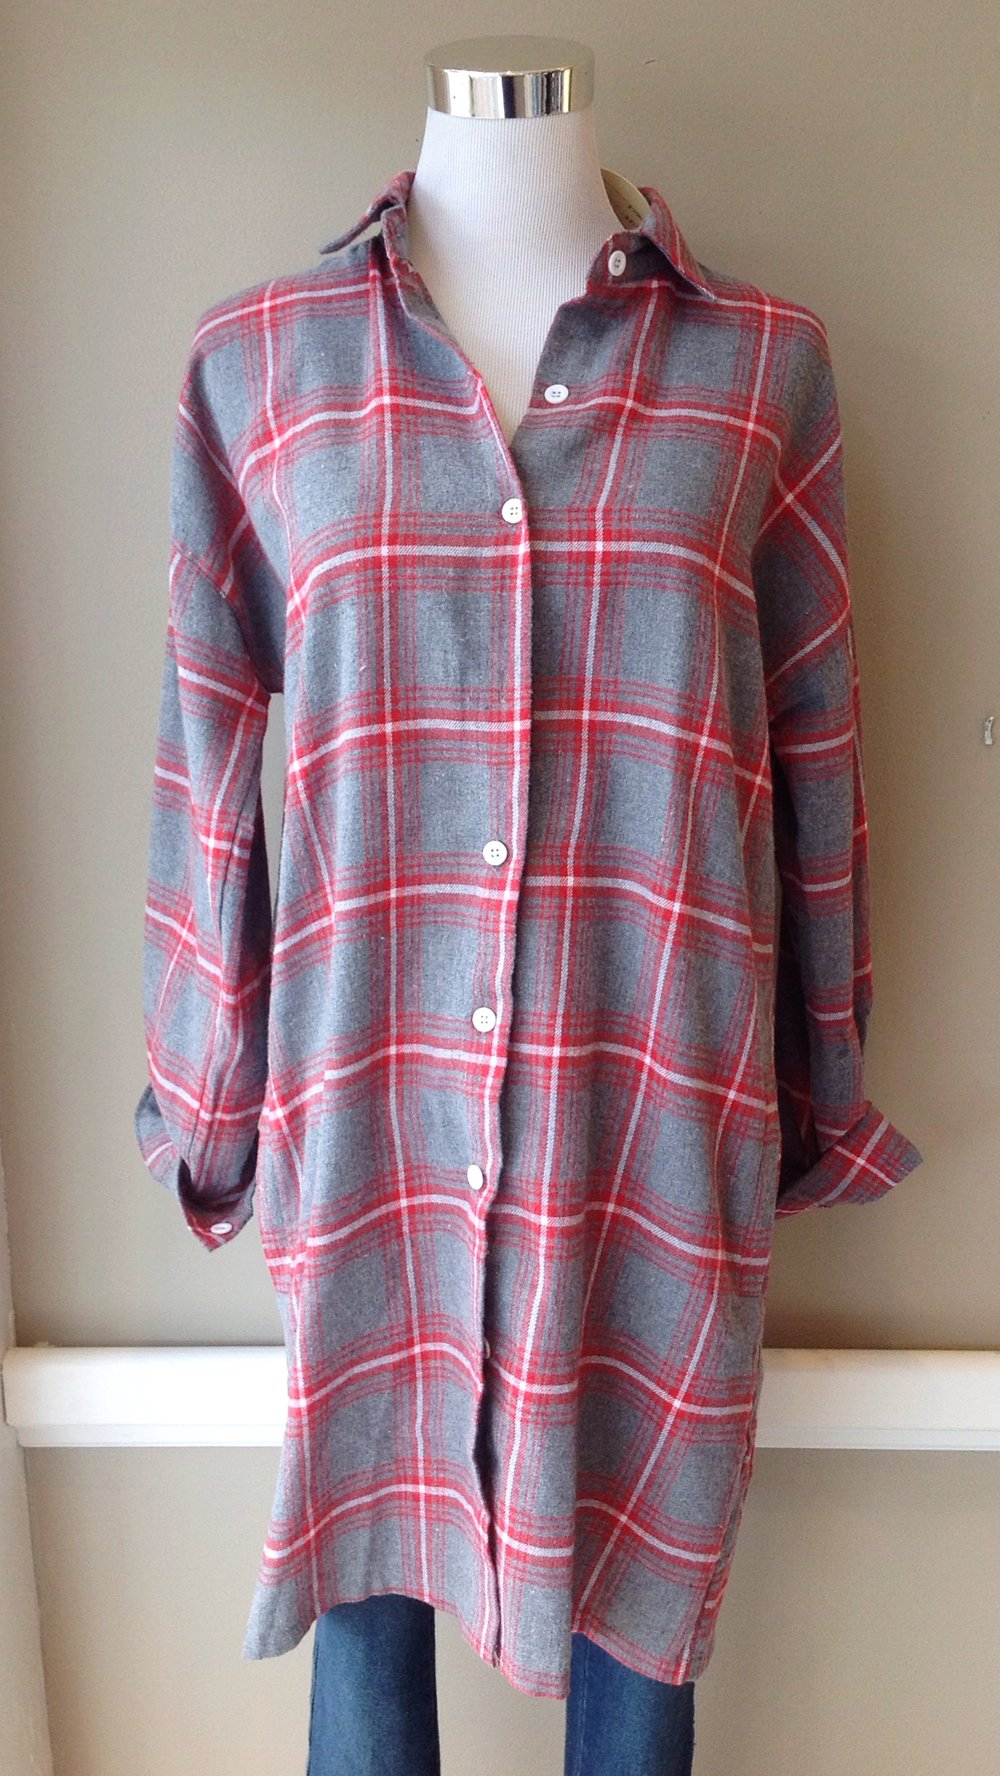 Cotton plaid shirt dress with side pockets in grey/red/white